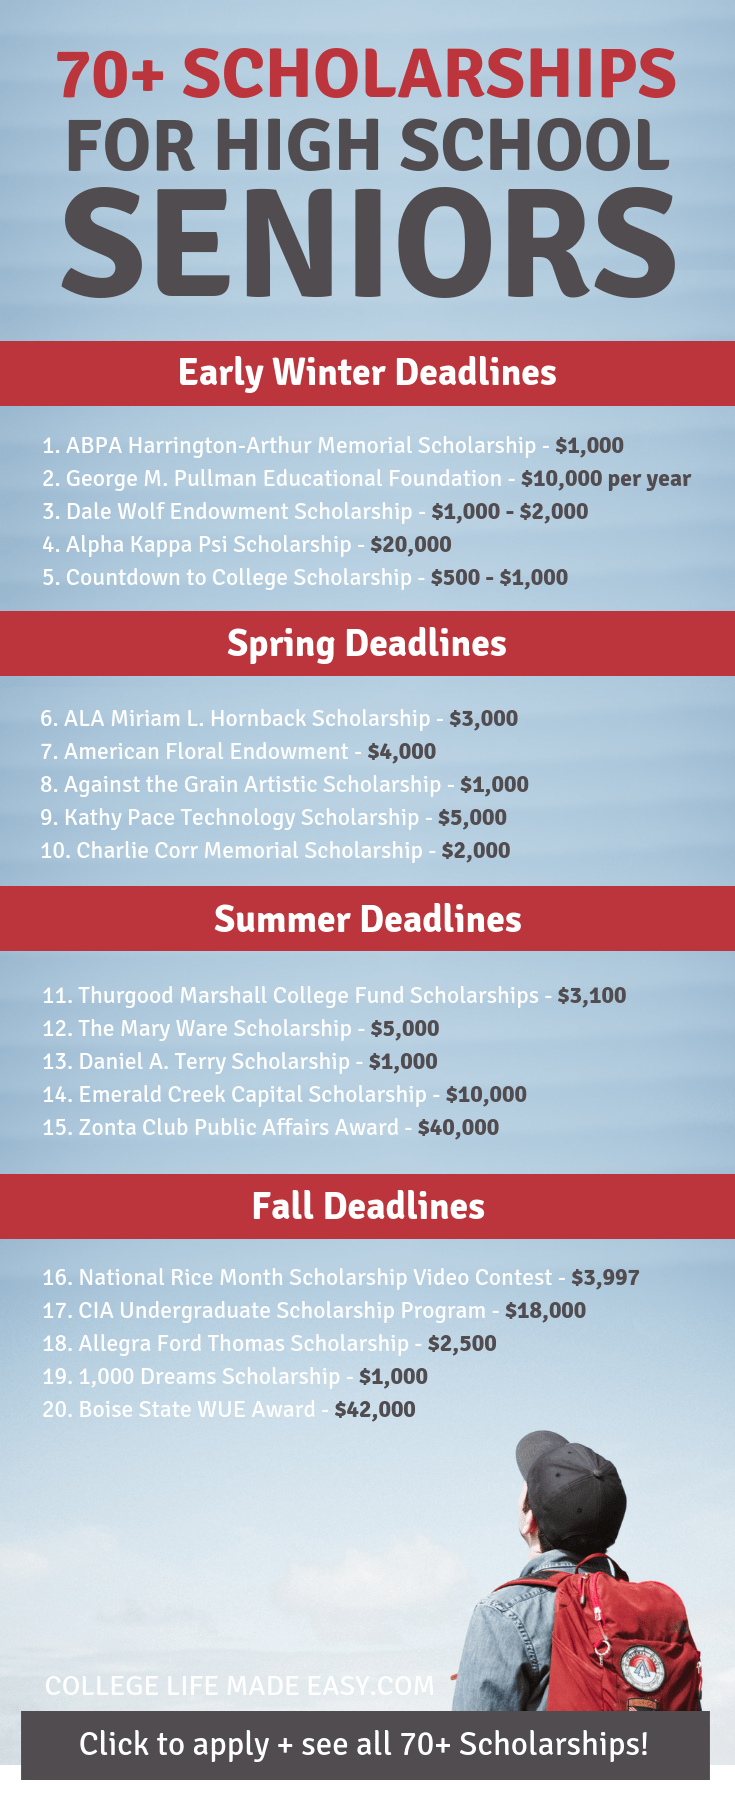 Need money to pay for college? Try applying to these scholarships for high school seniors! There are 70+ available opportunities in 2019, click to get started! #seniors #highschool #college #collegelife #scholarship #schoalrships